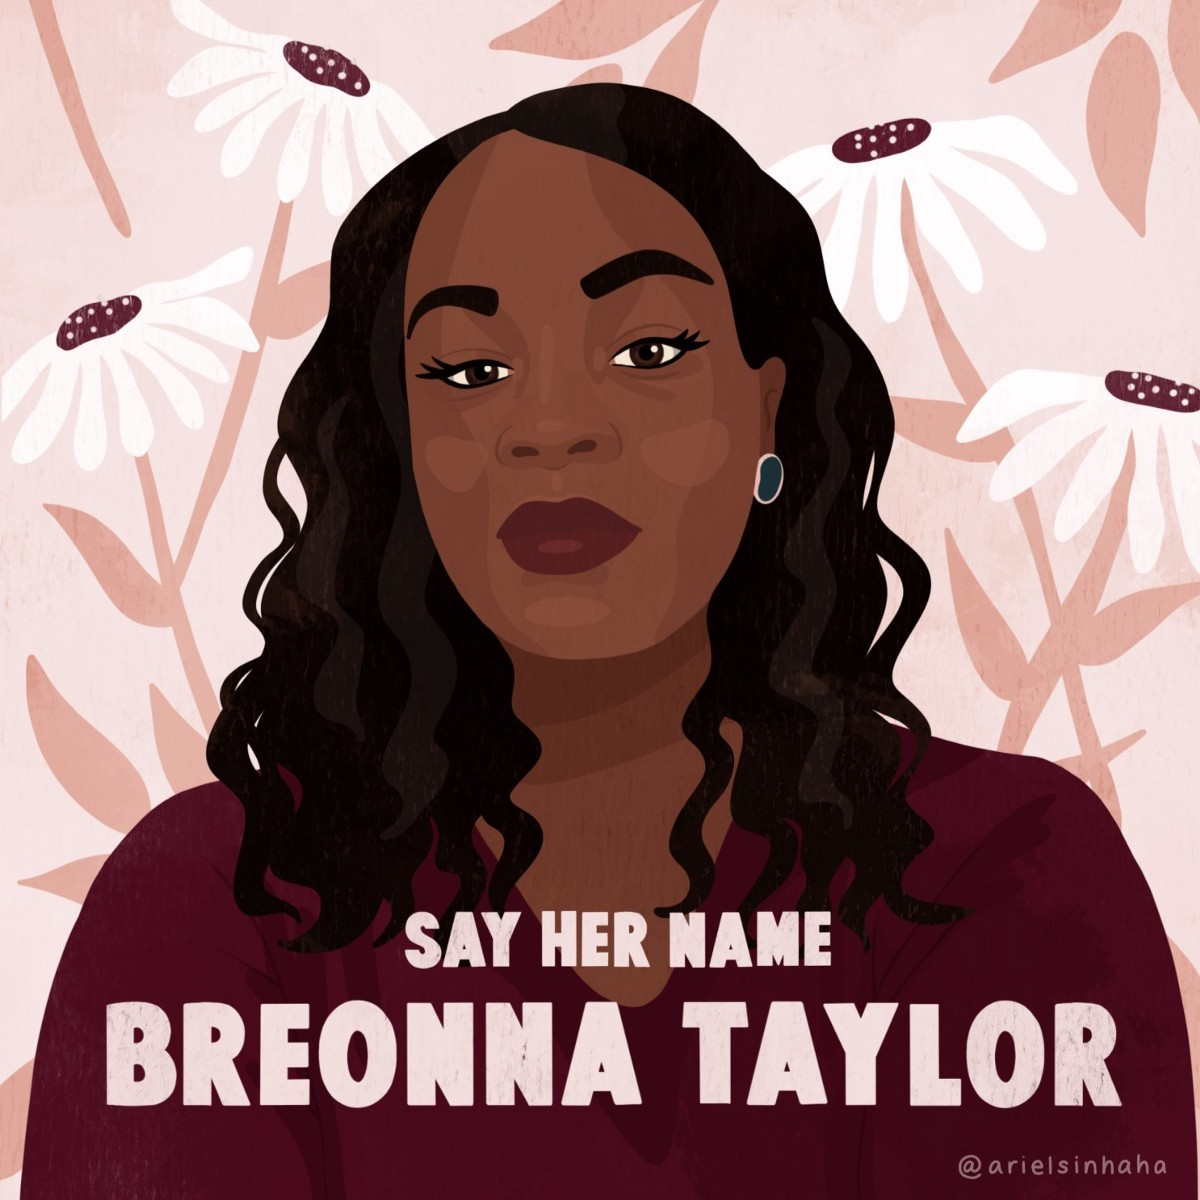 Where Are Black Women Safe A Look Into The Breonna Taylor Case And By Magda Erockfor Ayuk Fearless She Wrote Sep 2020 Medium